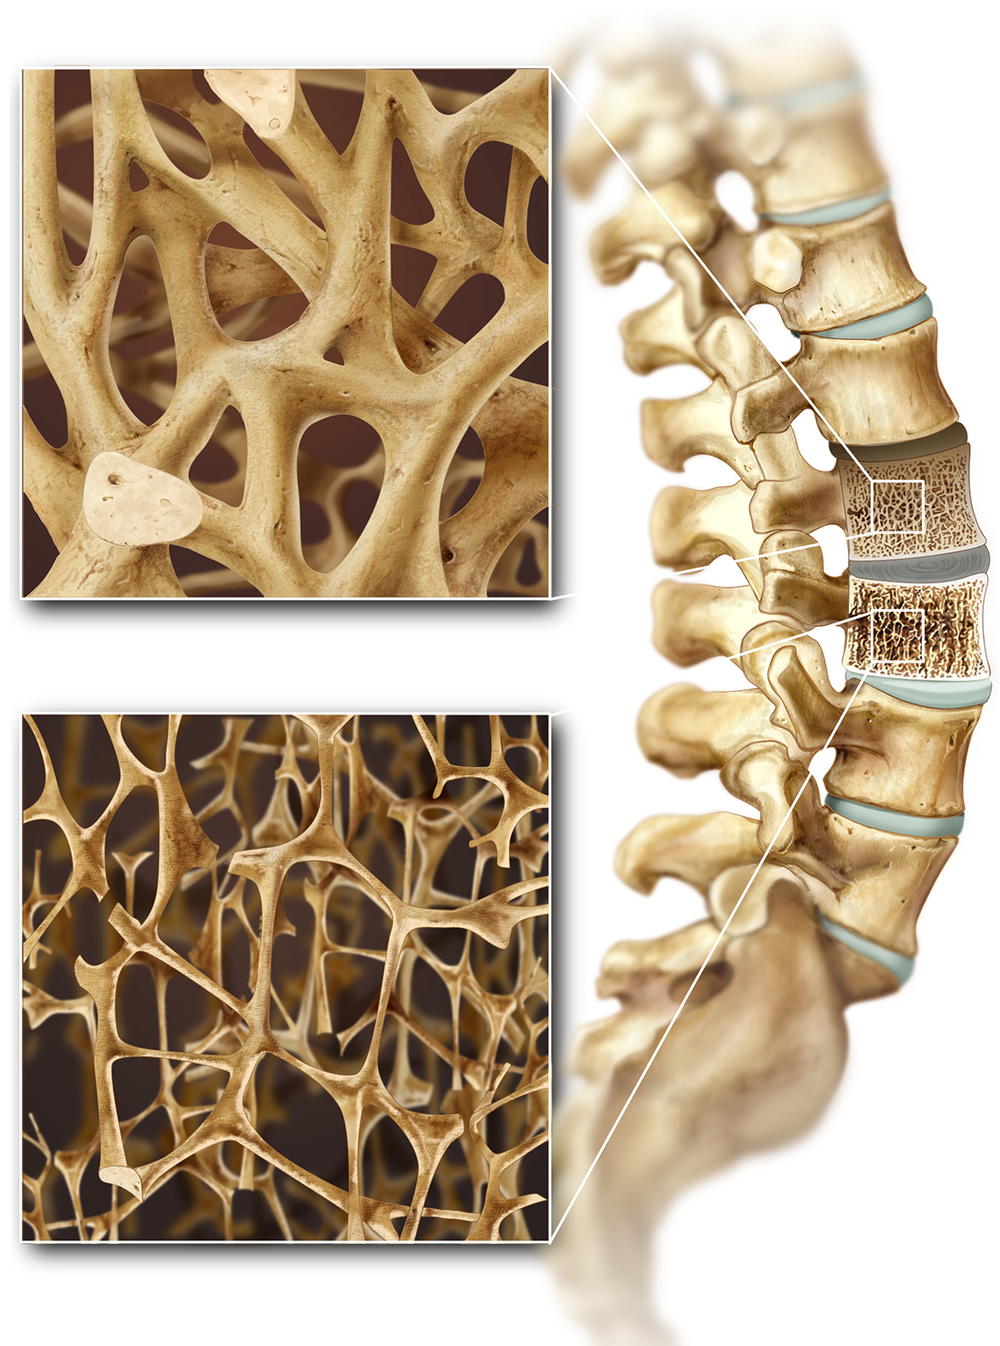 Osteoporosis vs healthy bone